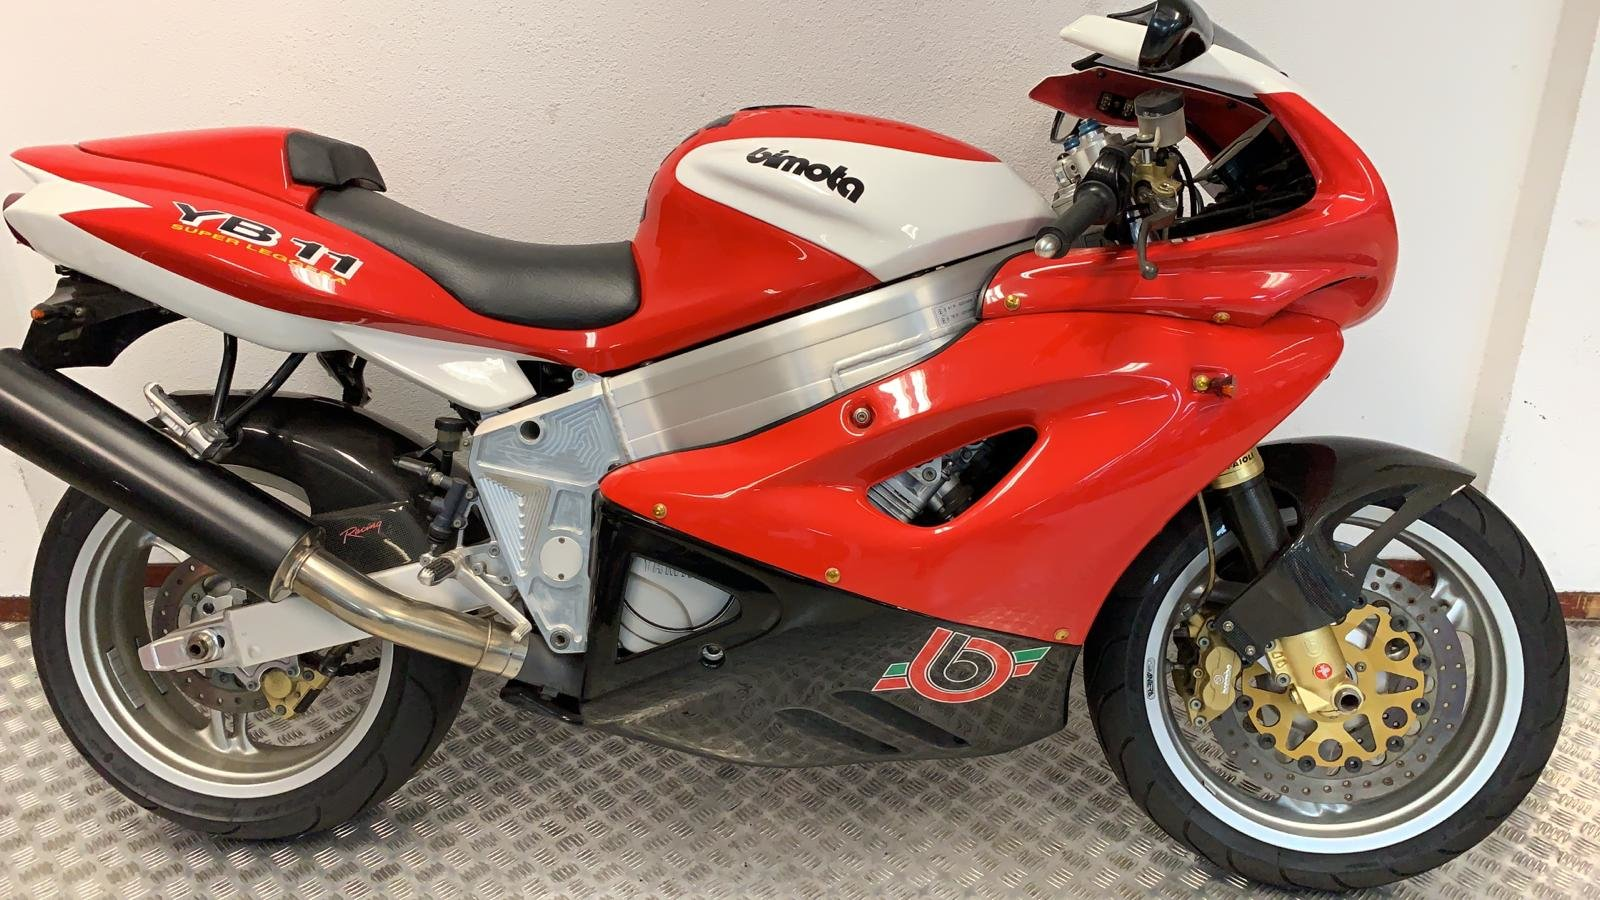 1999 Bimota YB11 immaculate  For Sale (picture 1 of 6)